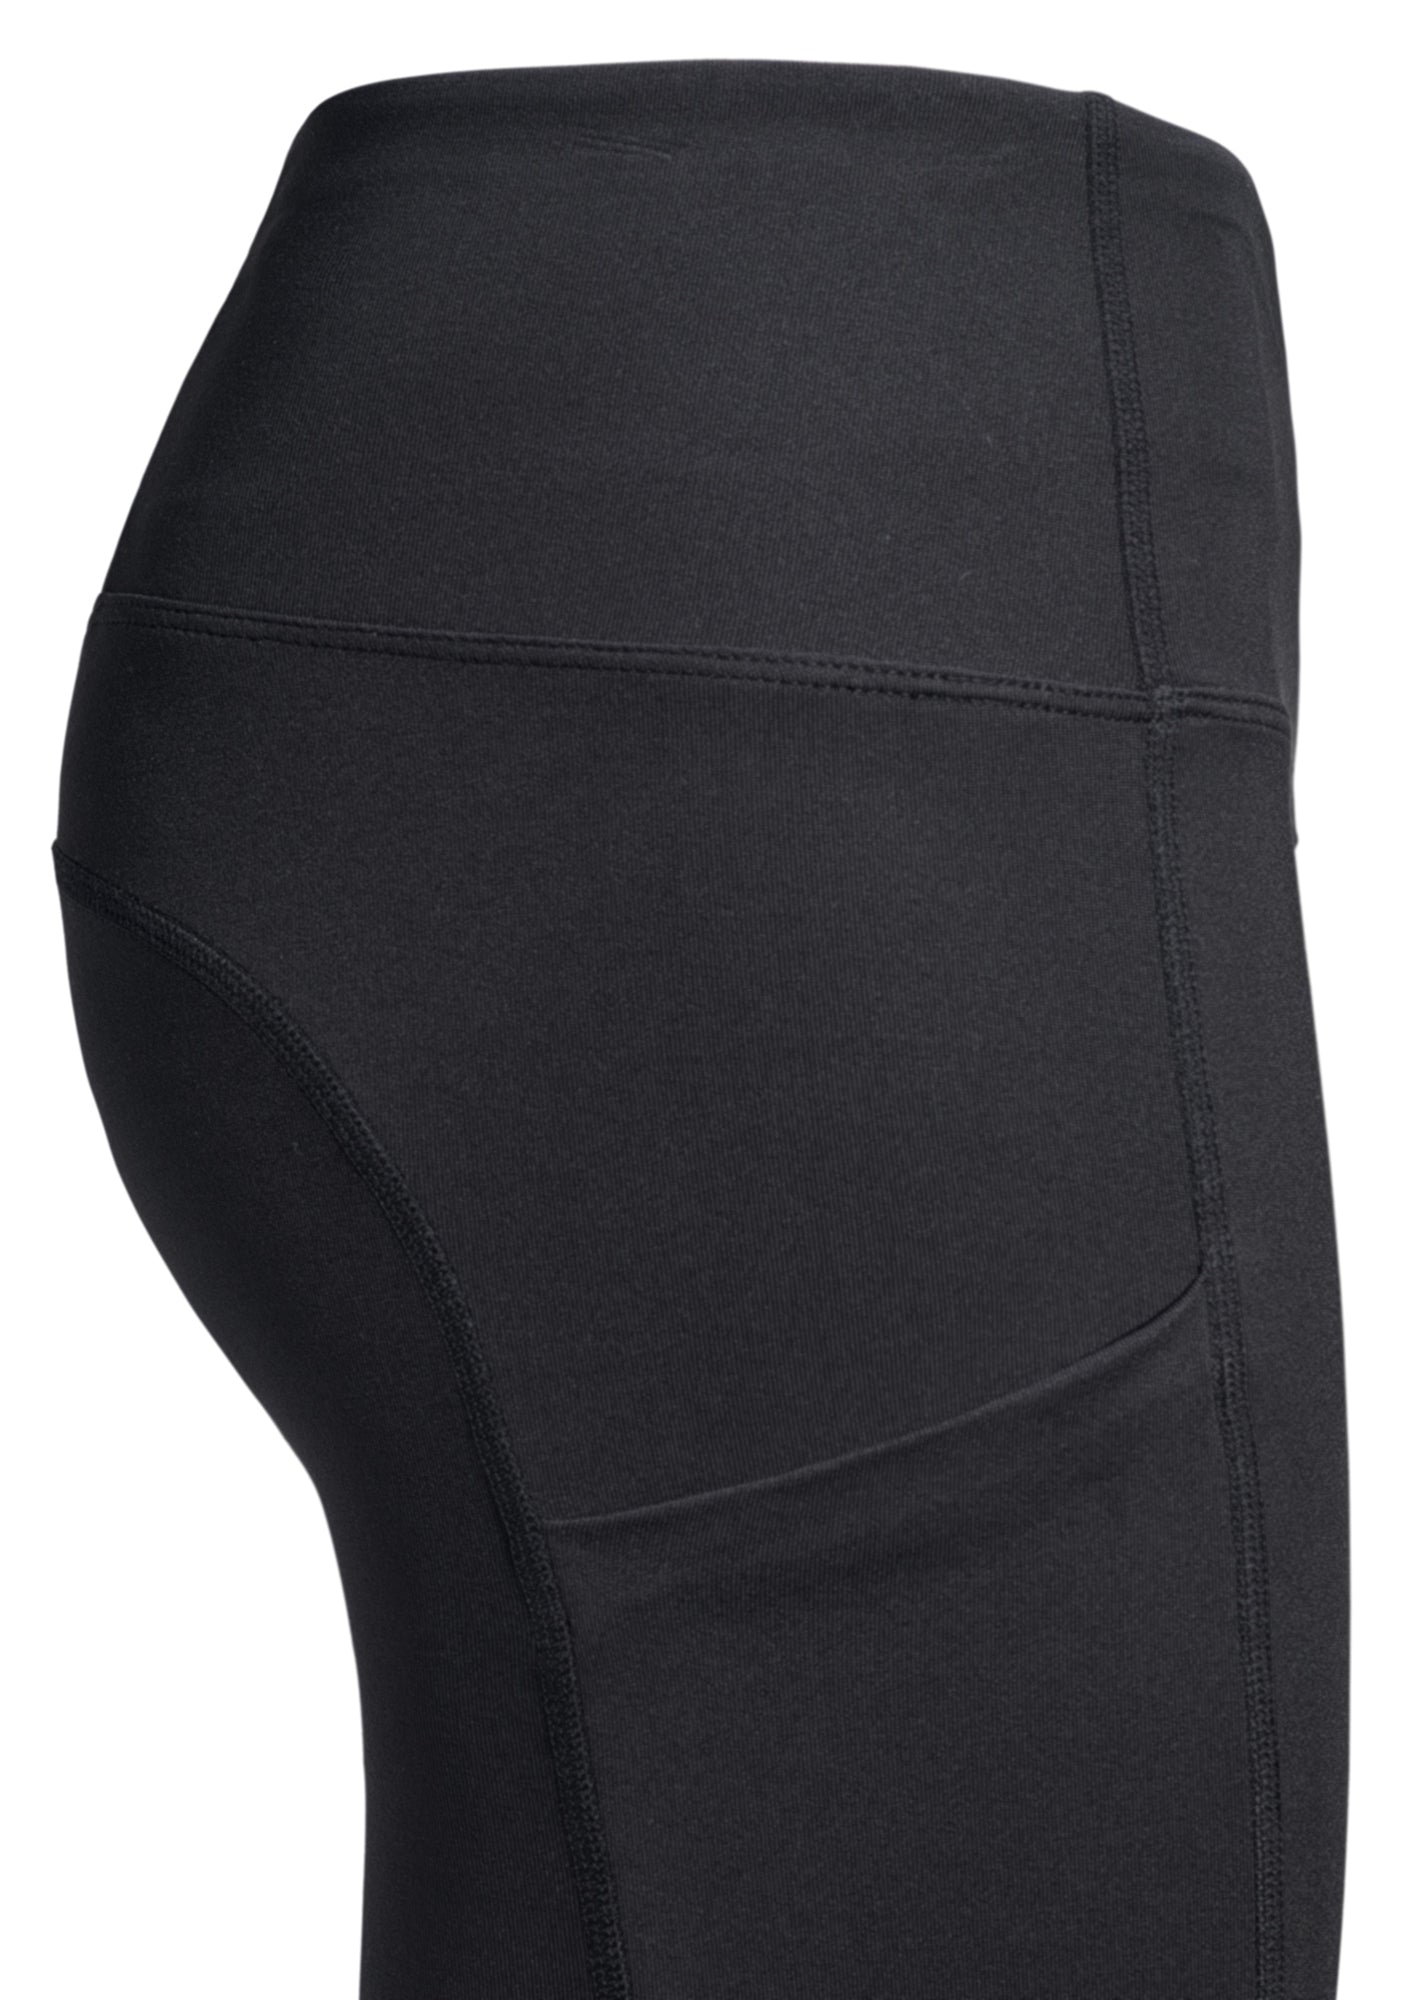 side pocket black legging woman christian activewear